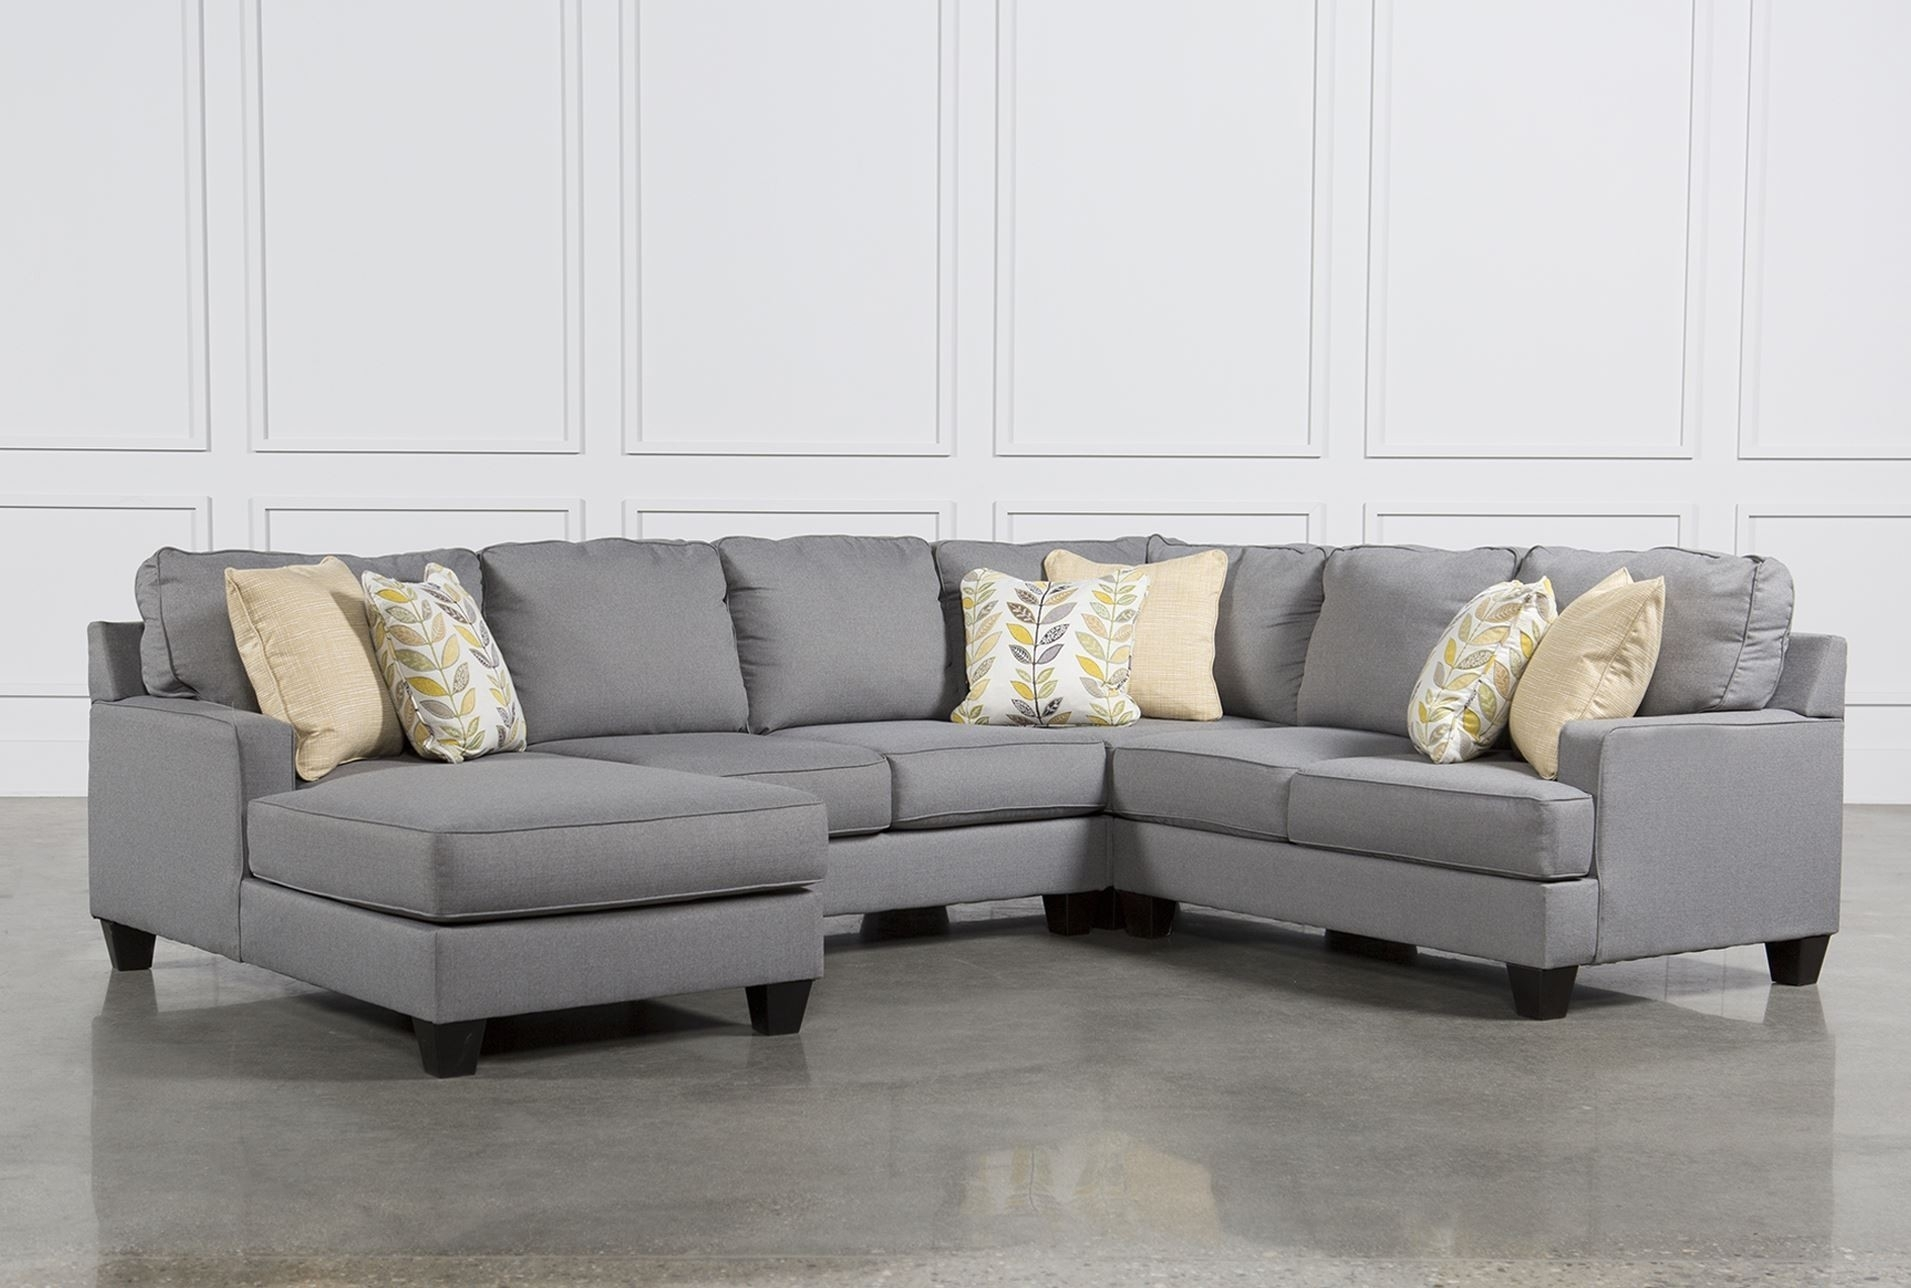 Living Spaces Sectional Sofas - Implantologiabogota.co throughout Aspen 2 Piece Sectionals With Laf Chaise (Image 20 of 30)